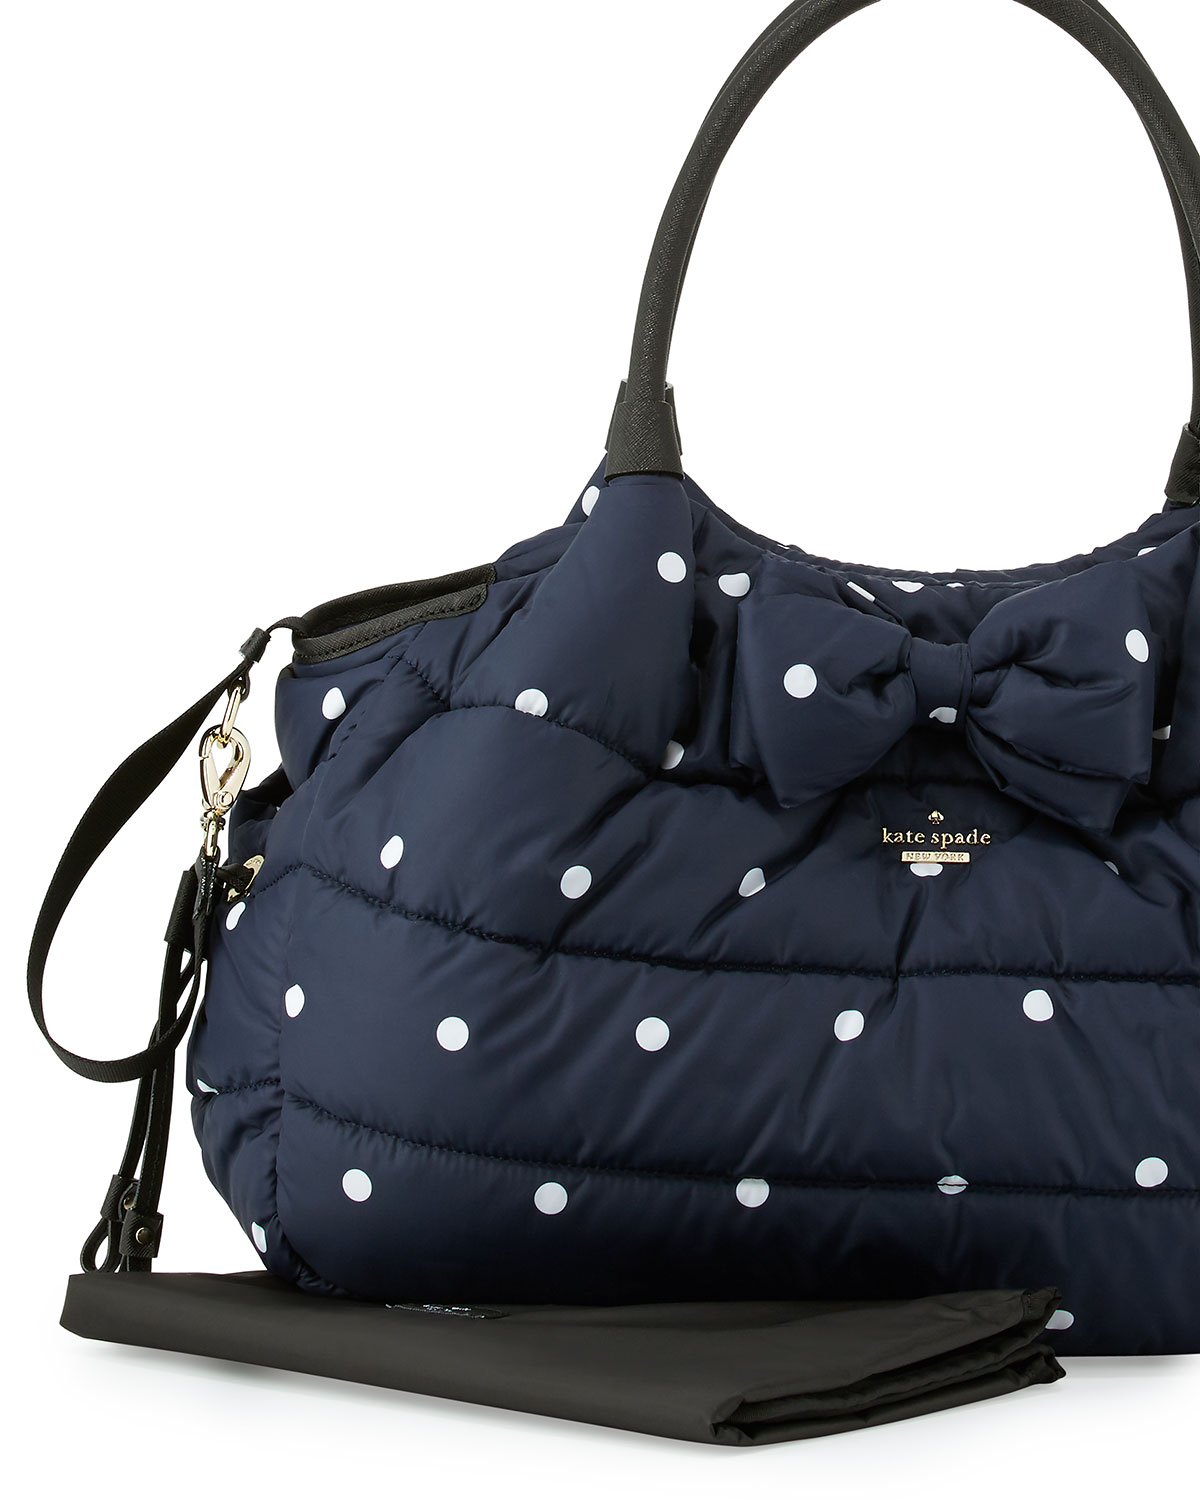 Kate spade new york stevie quilted polka dot diaper bag navy kate spade new york stevie quilted polka dot diaper bag navy neiman marcus junglespirit Choice Image